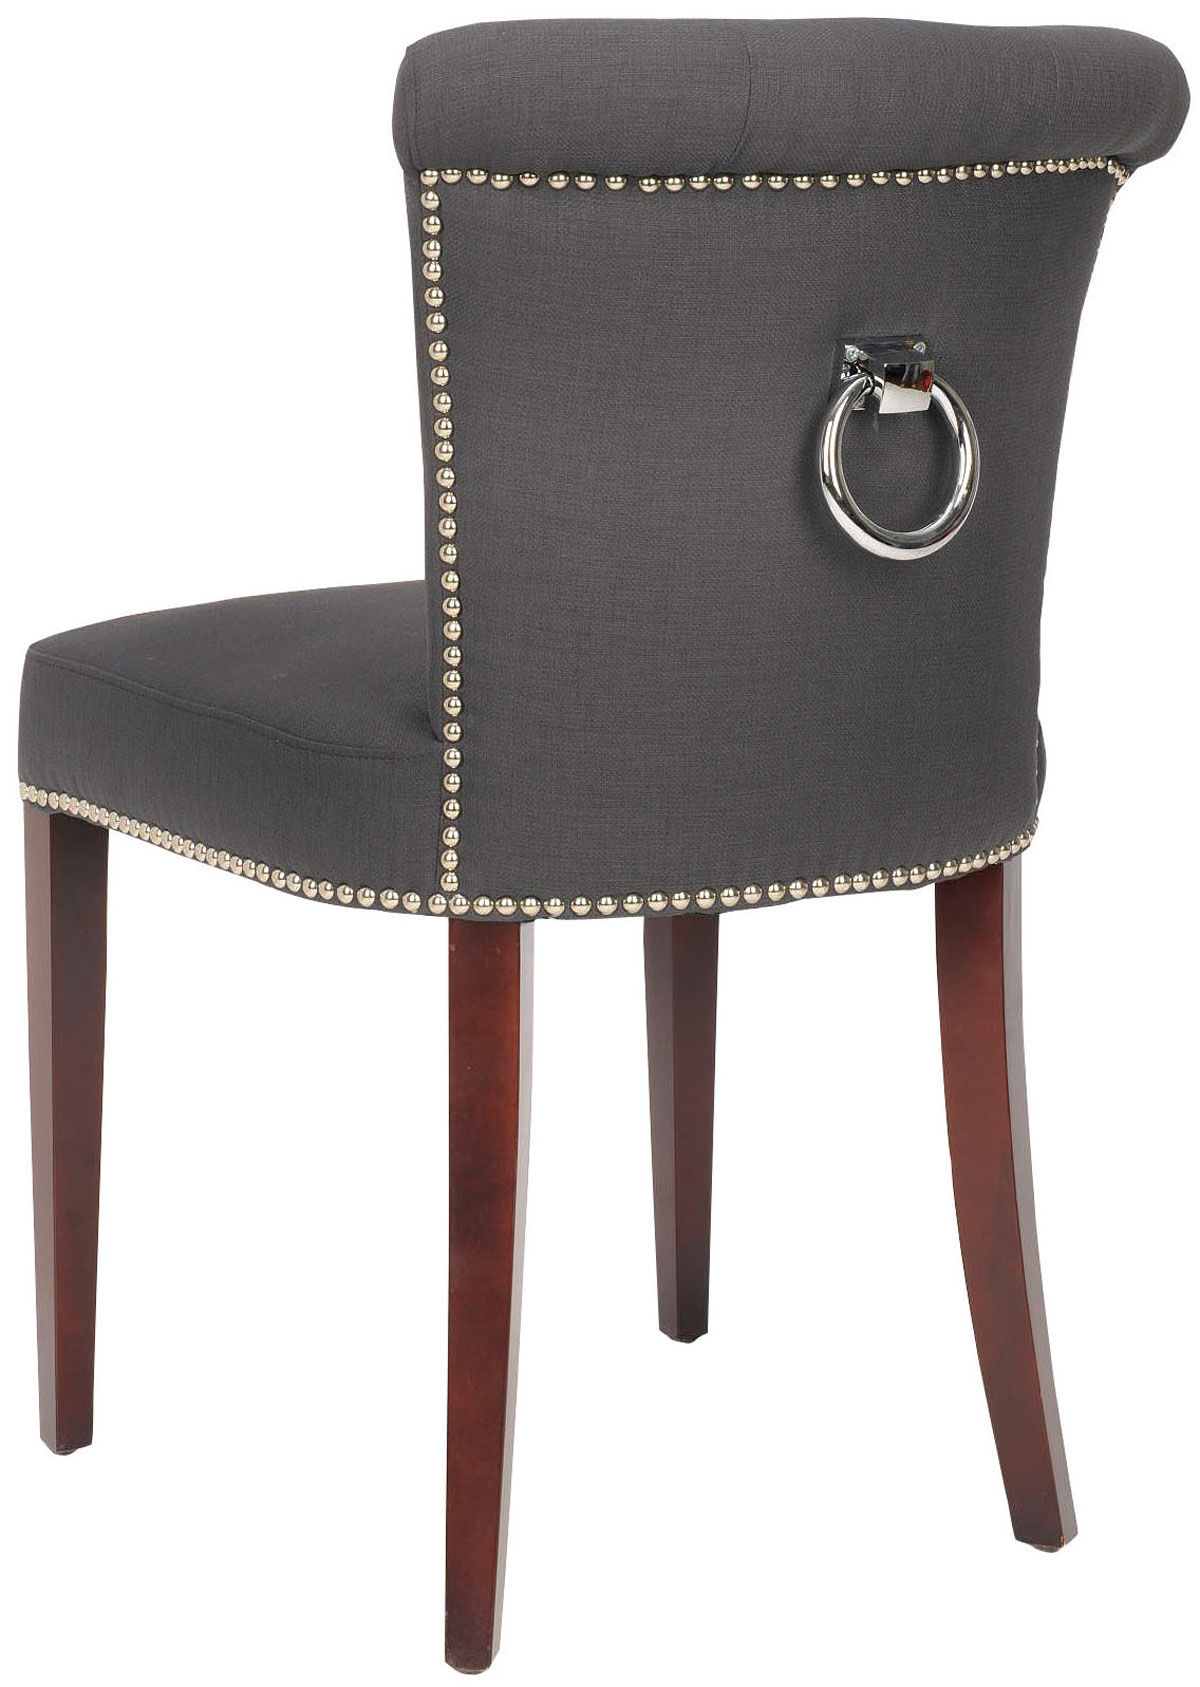 Unique MCR4514A-SET2 Dining Chairs - Furniture by Safavieh HR52